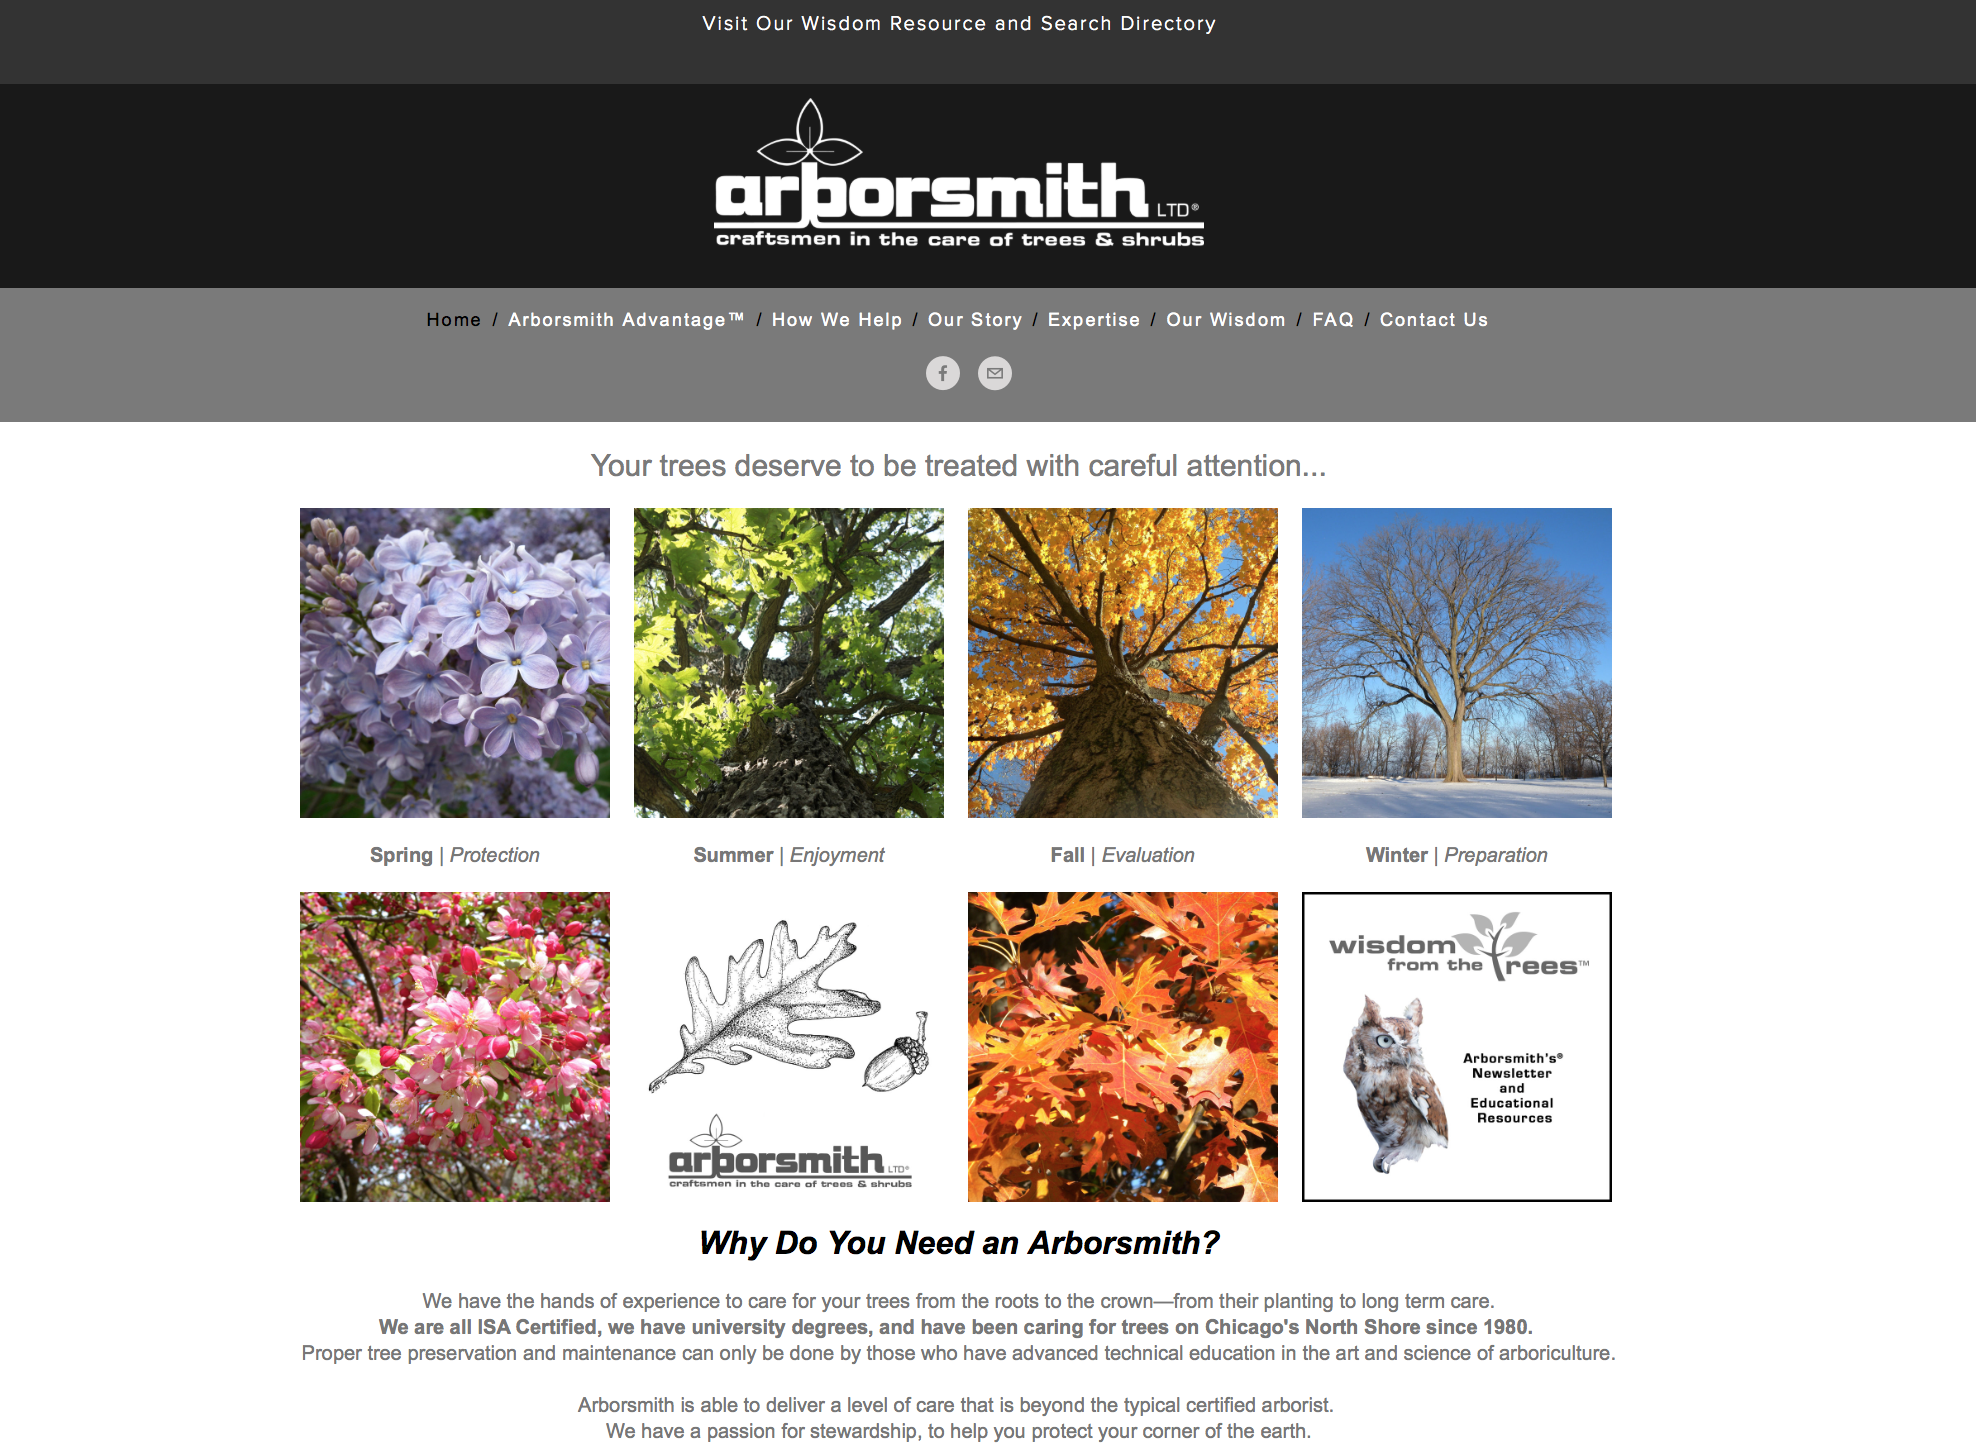 The Arborsmiths